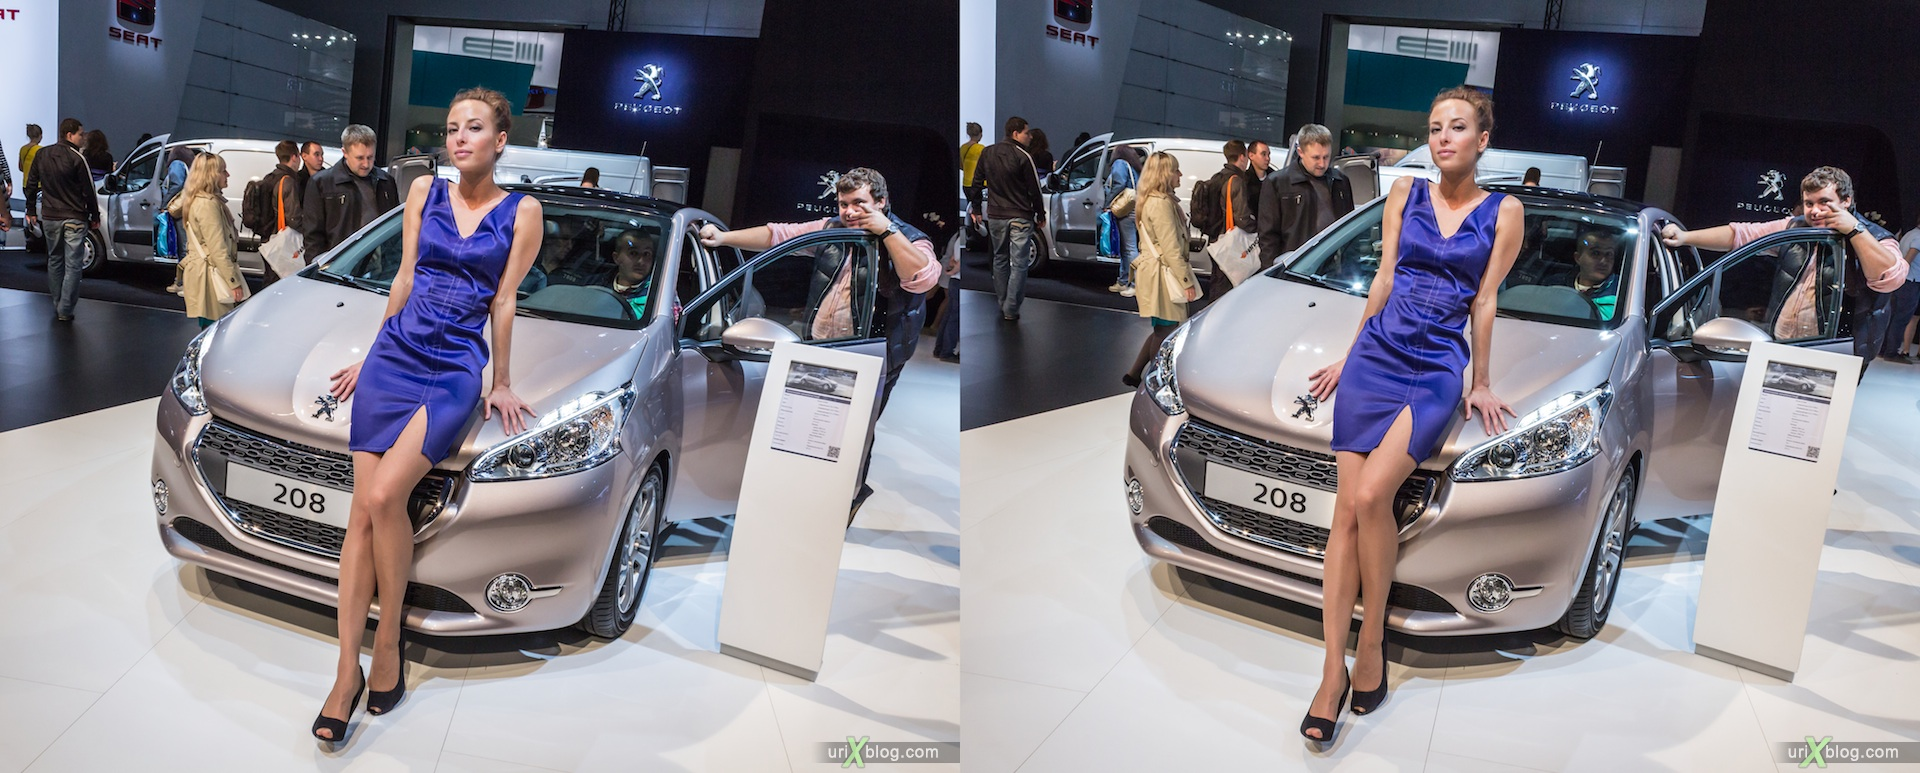 2012, Peugeot 208, girl, model, Moscow International Automobile Salon, auto show, 3D, stereo pair, cross-eyed, crossview